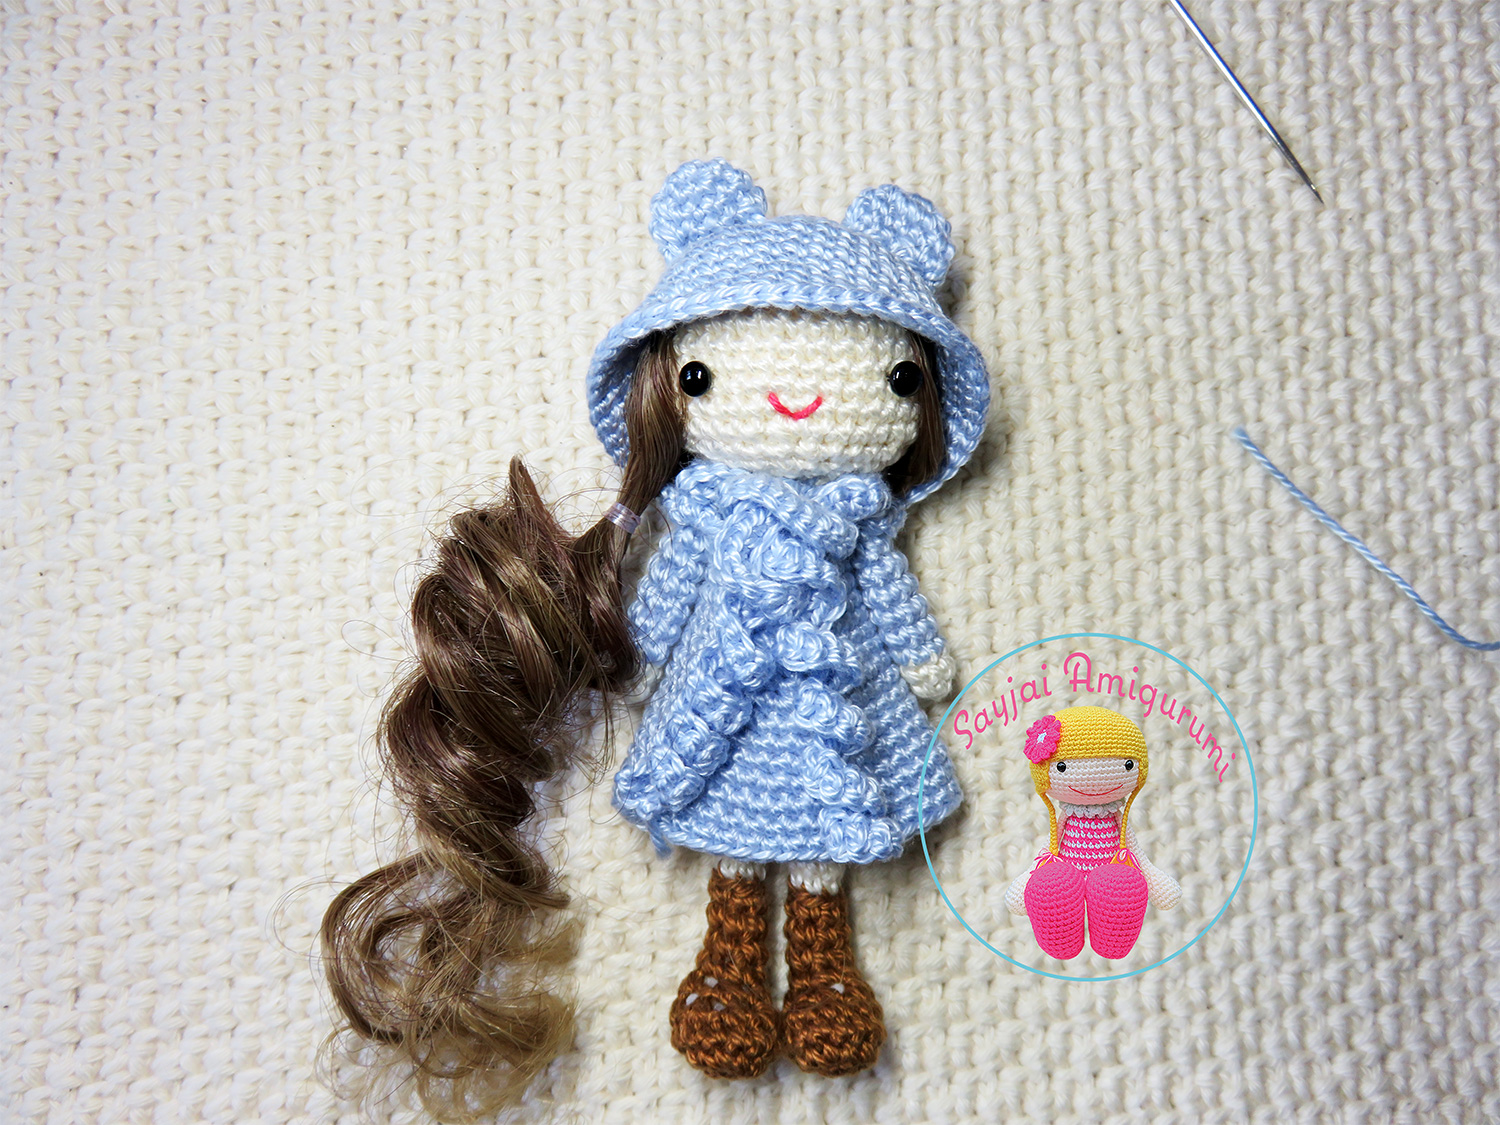 Amigurumi Curly Doll : Curly girls amigurumi crochet pattern sayjai